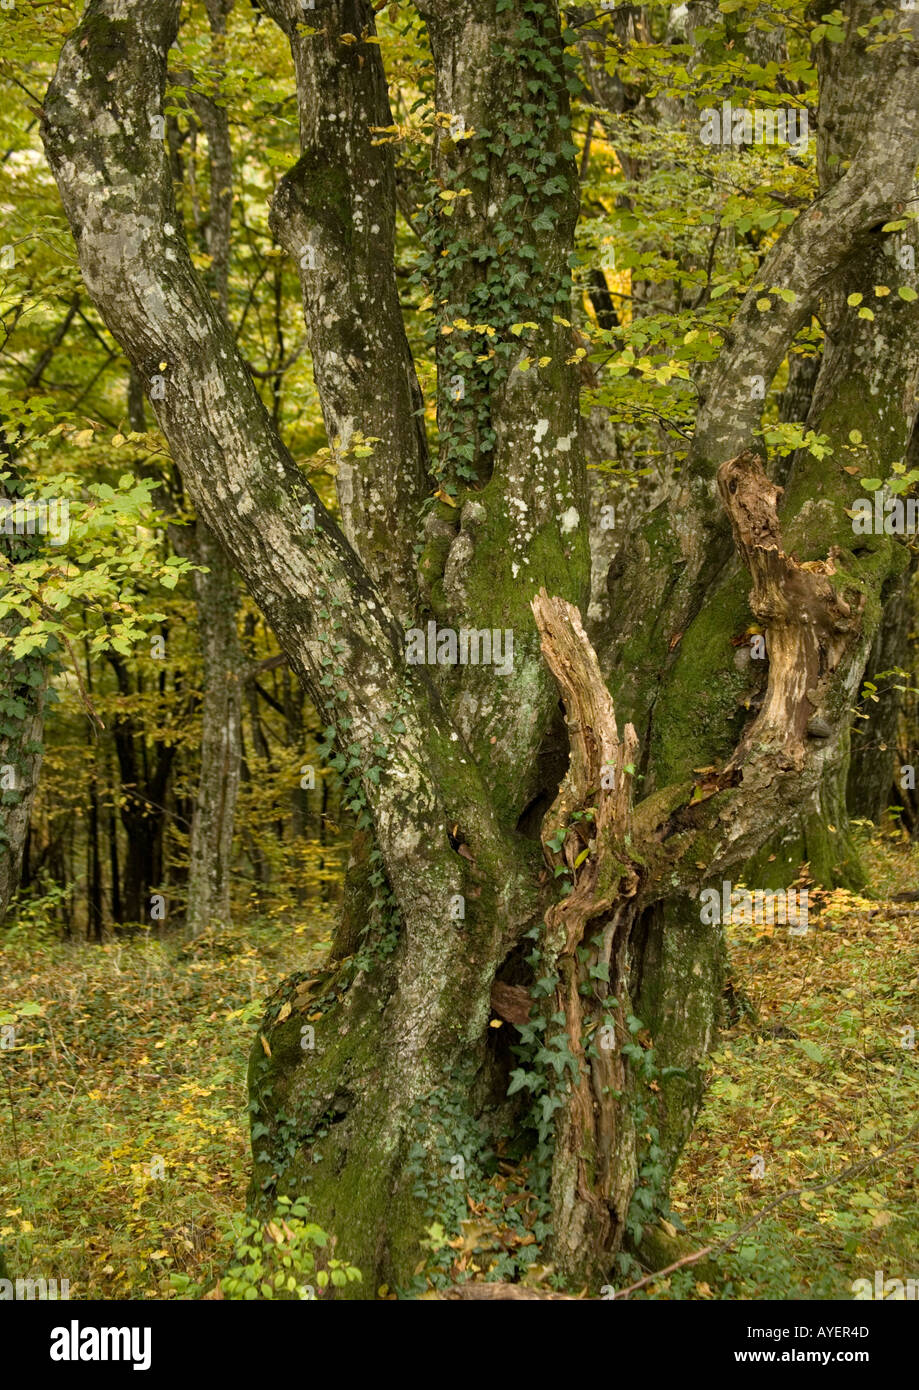 Old hornbeams Carpinus betulus mainly coppiced in natural woodland - Stock Image